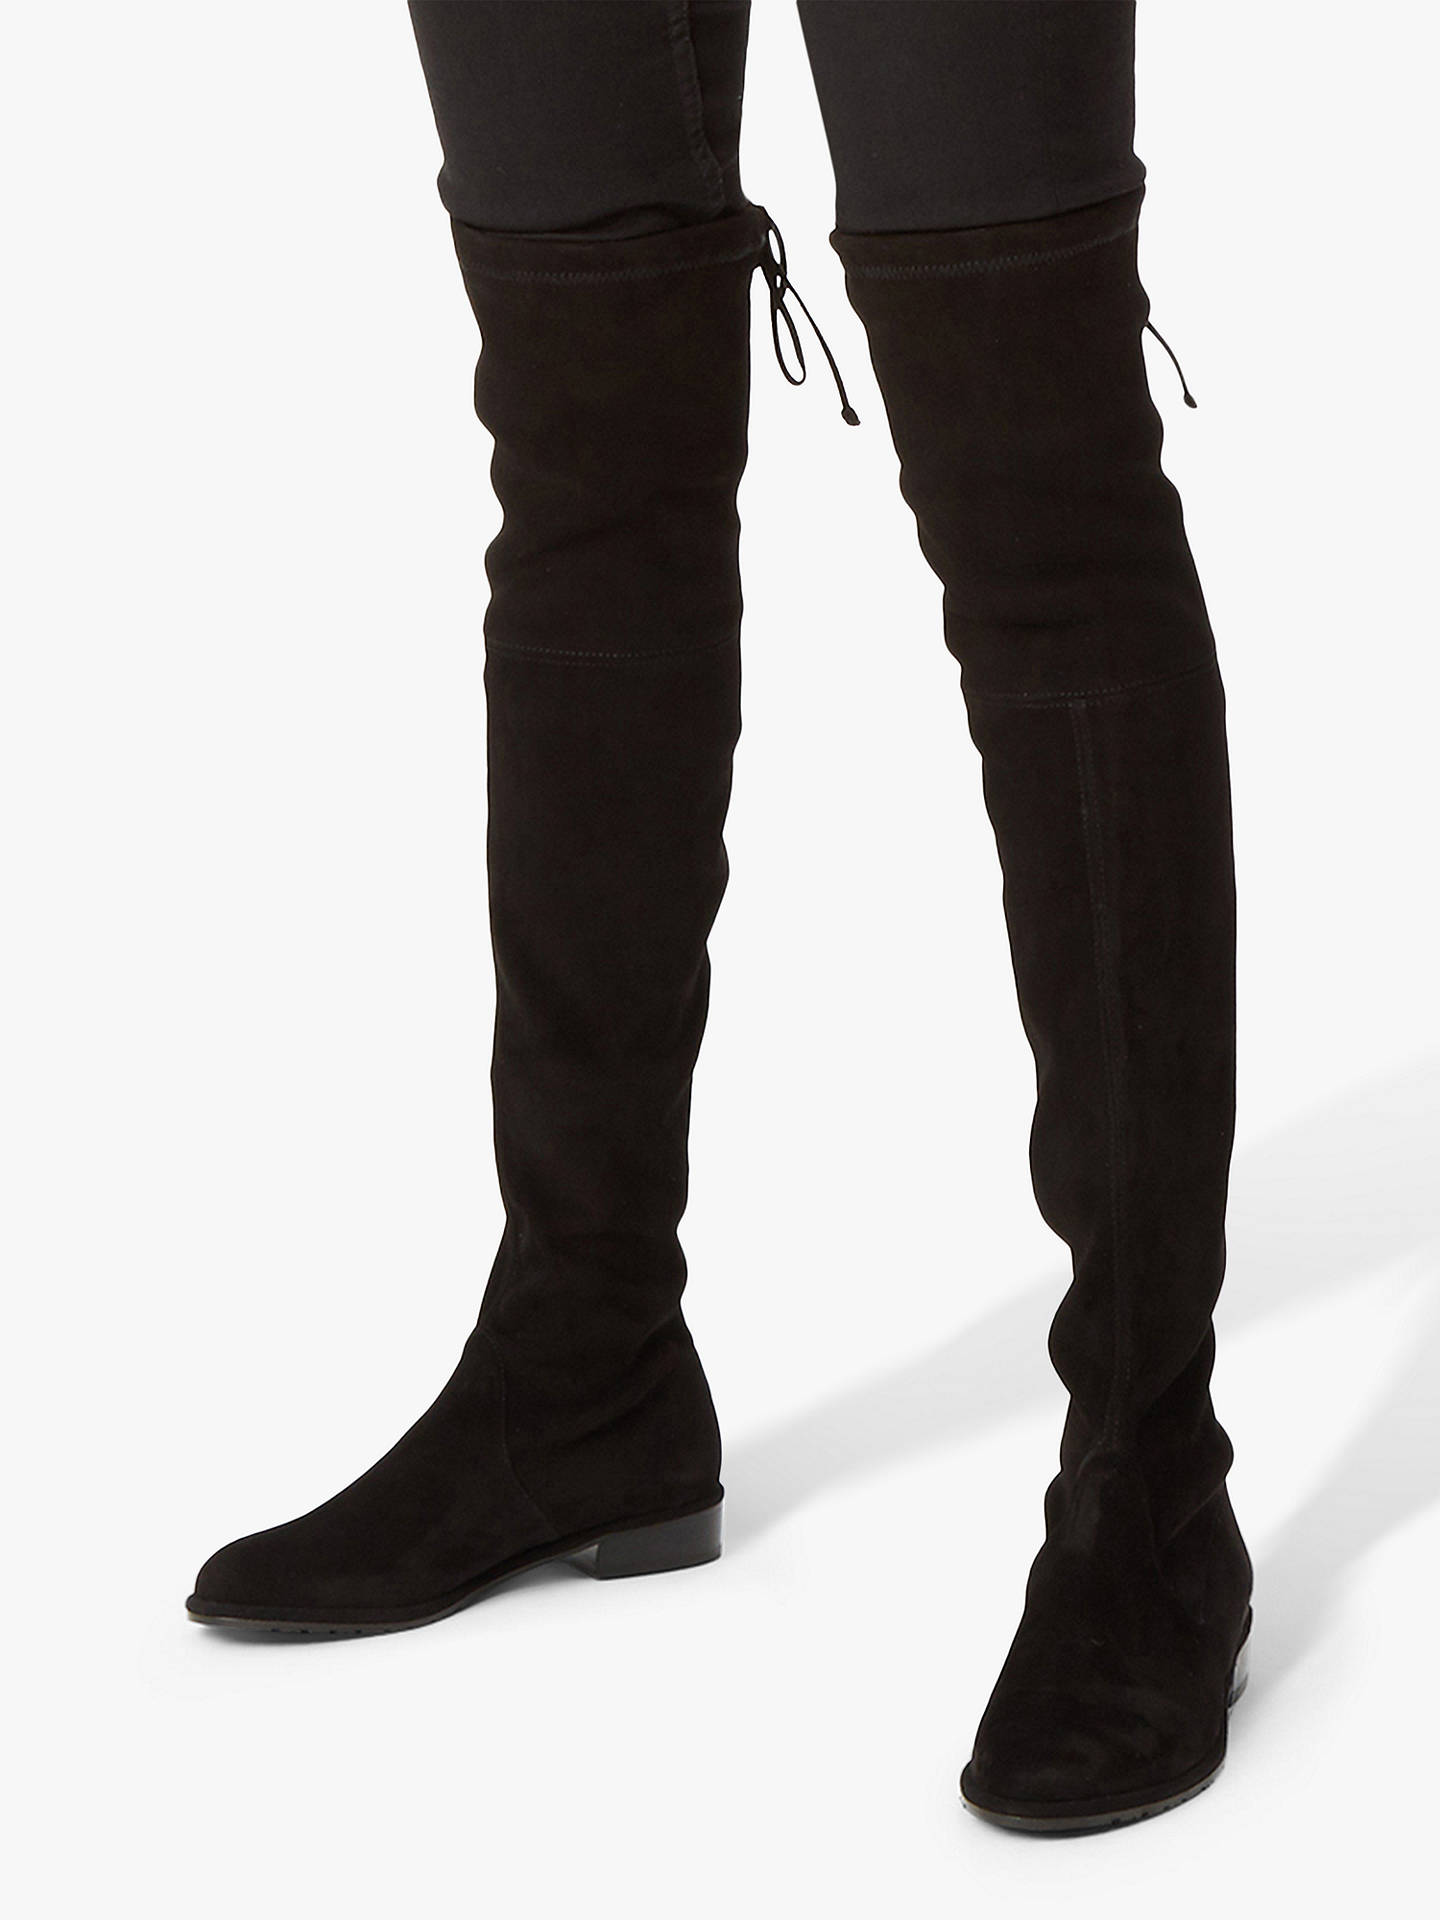 03be6b77c2e ... Buy Stuart Weitzman Lowland Over The Knee Boots